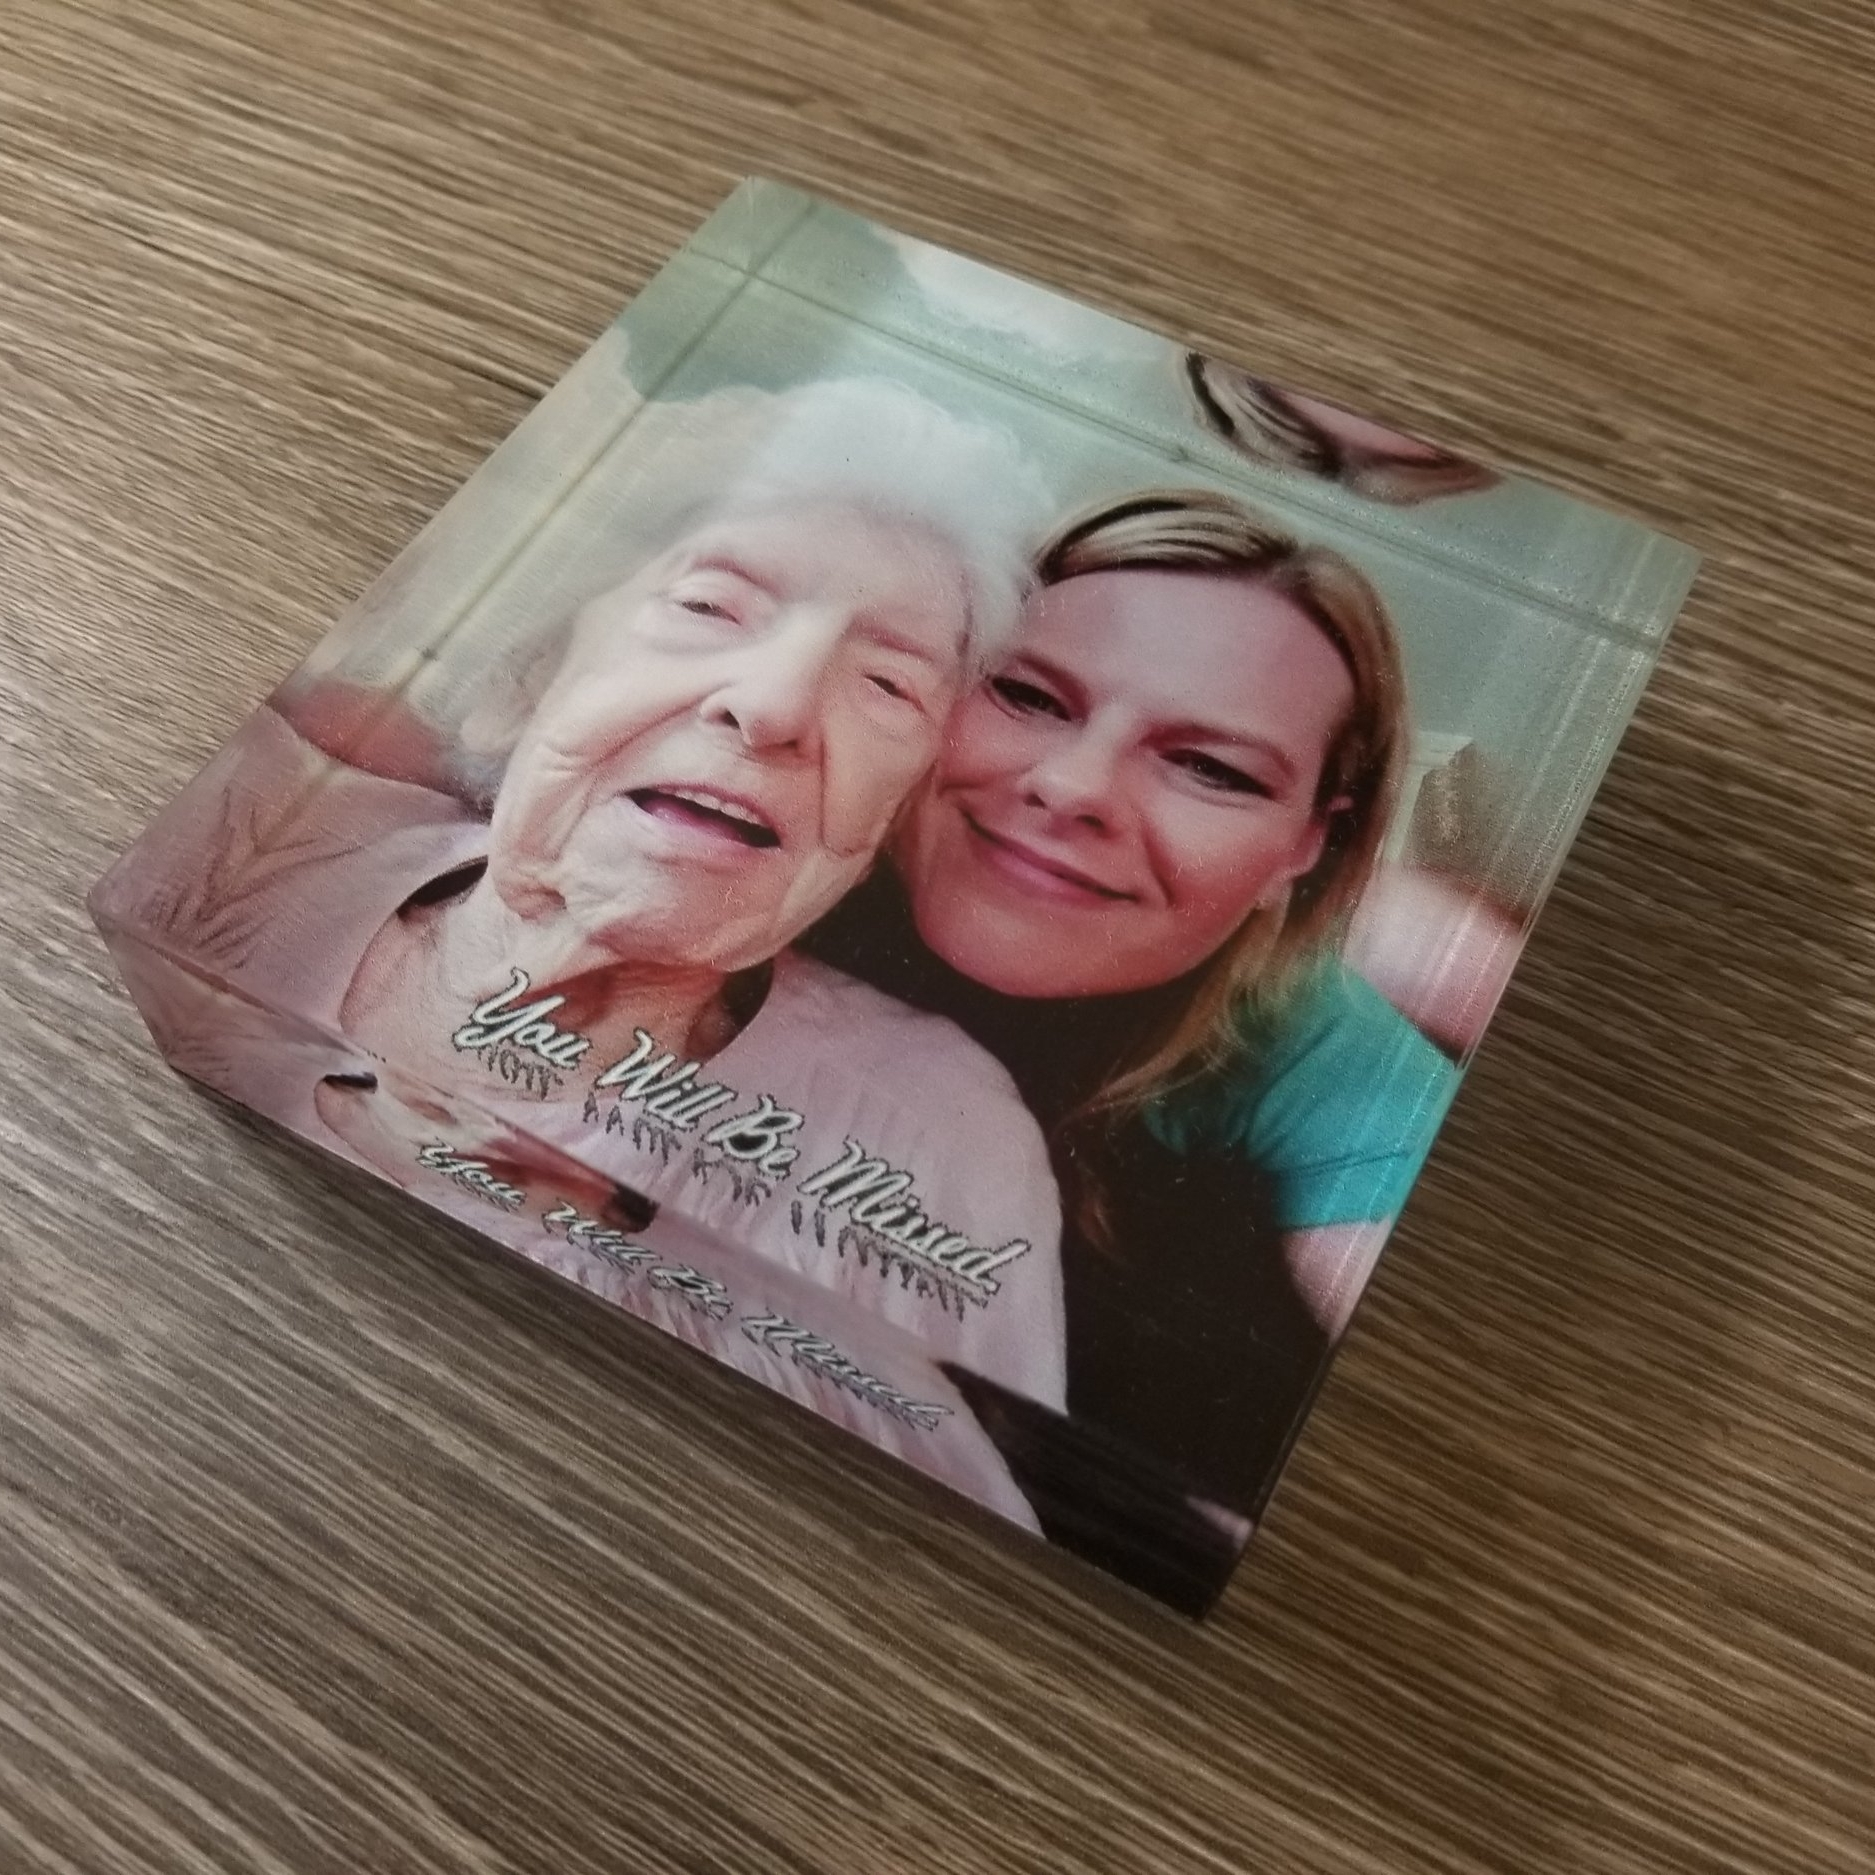 Copy of Custom Photo Cube - Personalized Photo Cube - Direct Print Photo Cube - Full Color Photo Cube - Custom Projects - Engrave It Houston